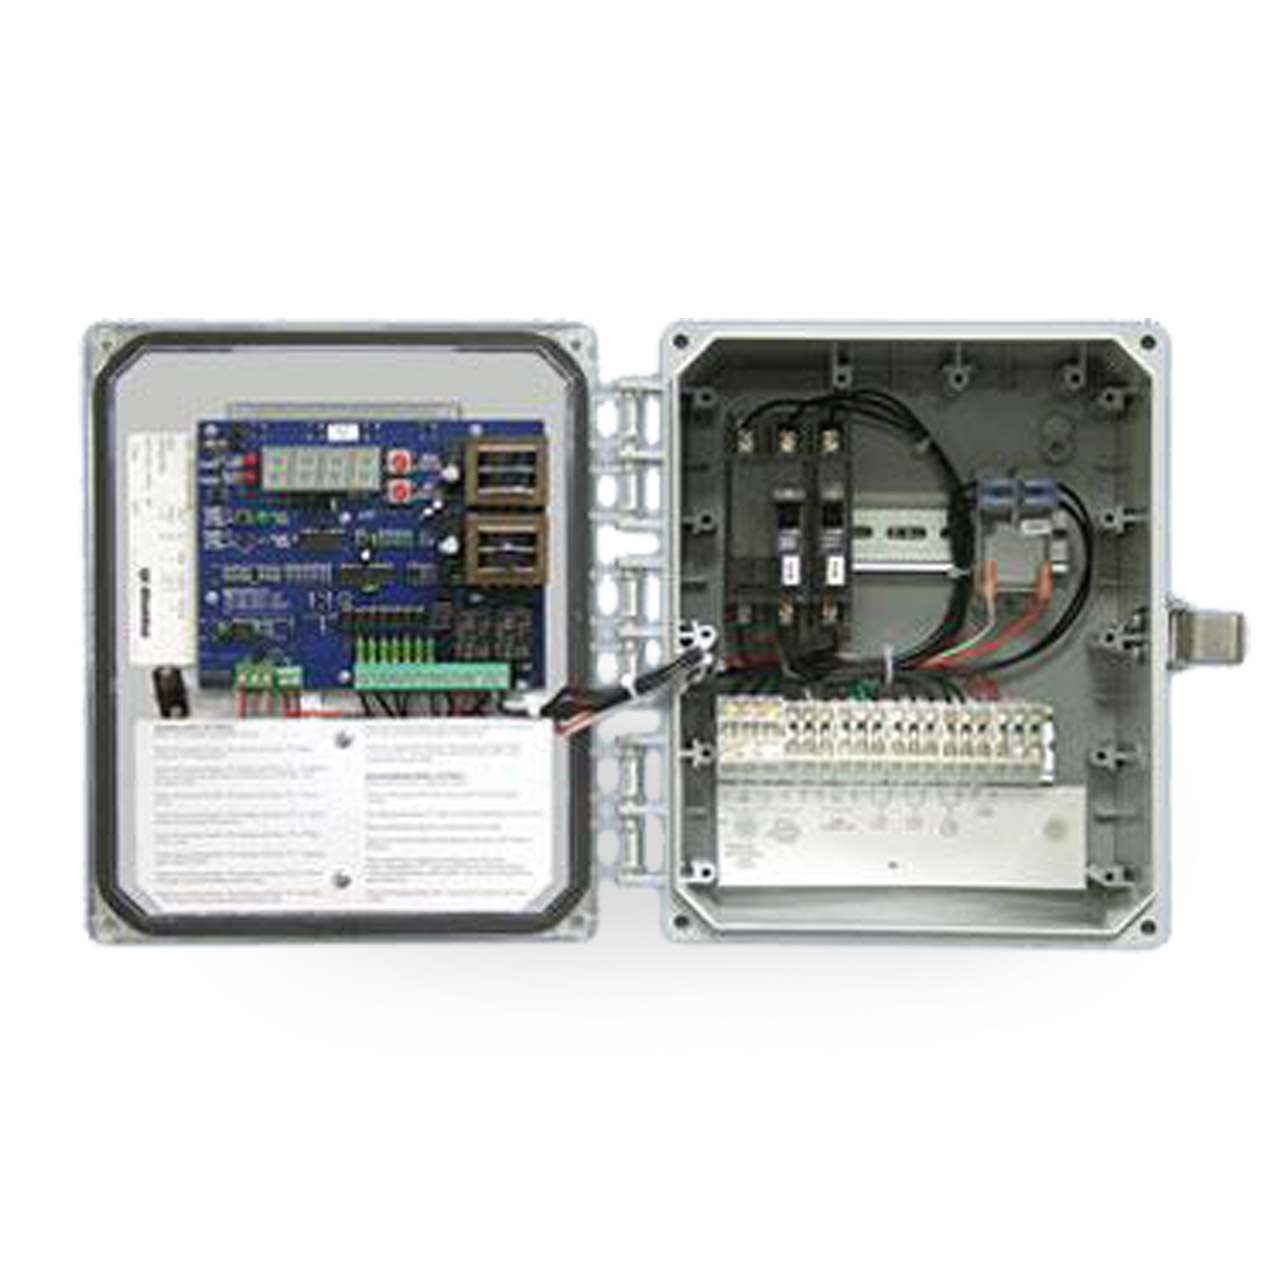 Sje Rhombus Ez Series Simplex Pump Control Panel Timed As Well Circuit 120 208 3 Phase On 2 Motor Diagrams Dose Sjeezs1